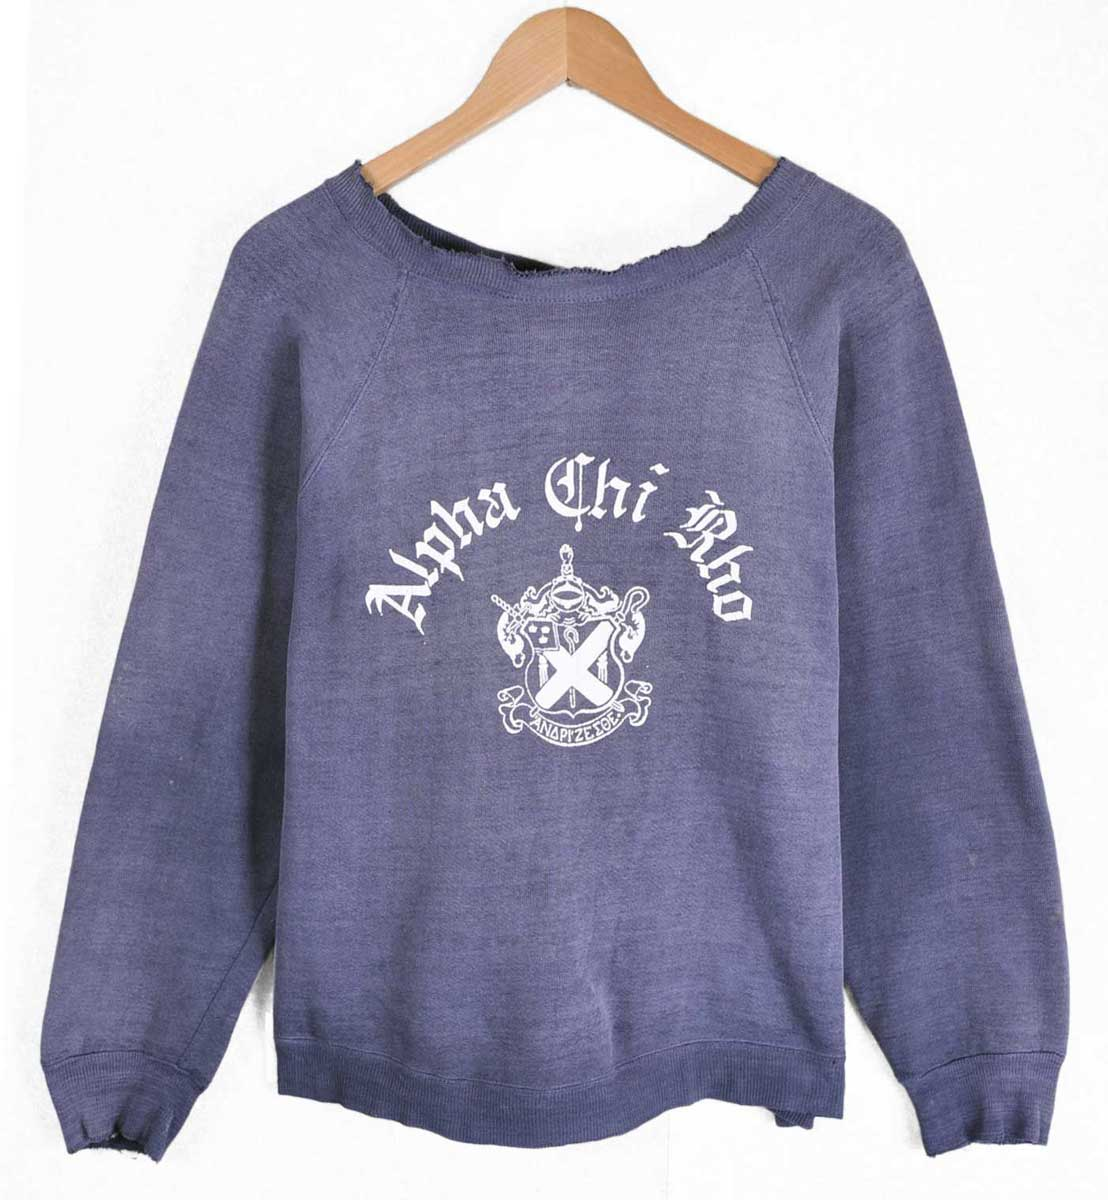 / Vintage 1960 ΑΧΡ alfatilor college system / fraternity sweatshirts and Navy / mens M equivalent